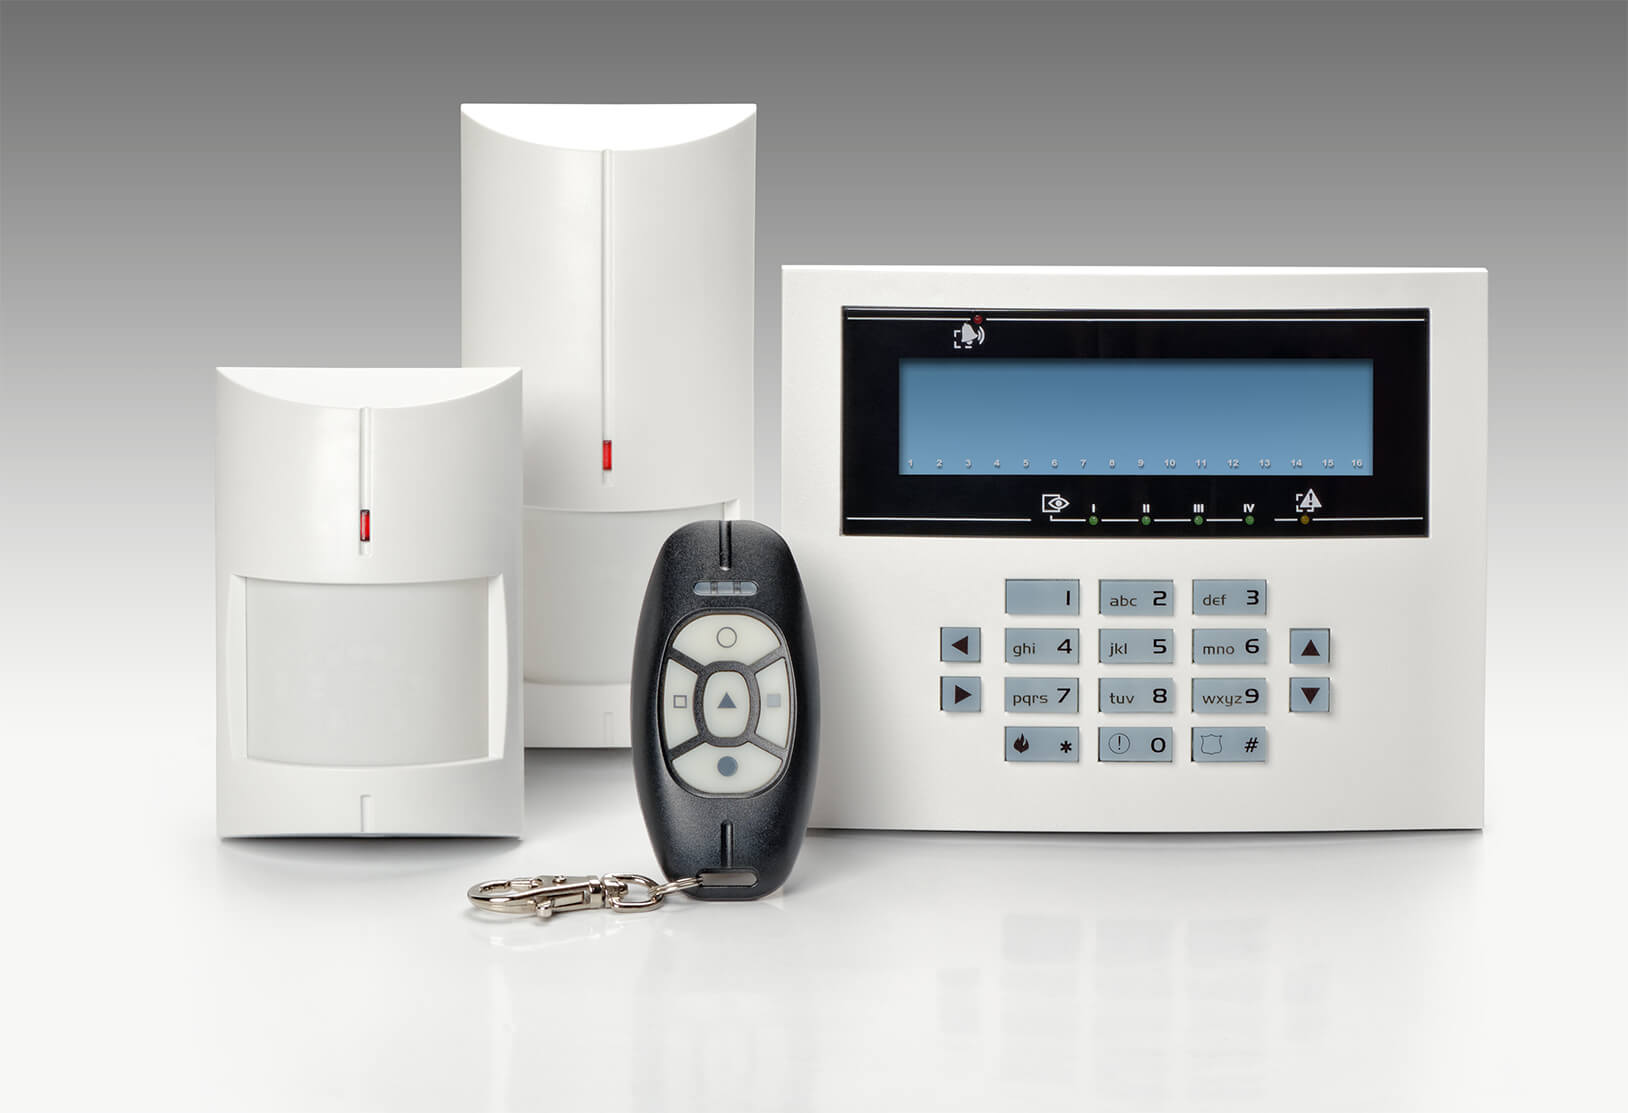 Business & Residential NACOSS Approved Burglar Alarms In Tulse Hill SE27 - Local Tulse Hill SE27 security company.Call 02078872244 - Dedicated to Safety & Security. Companies, shops and homes ..